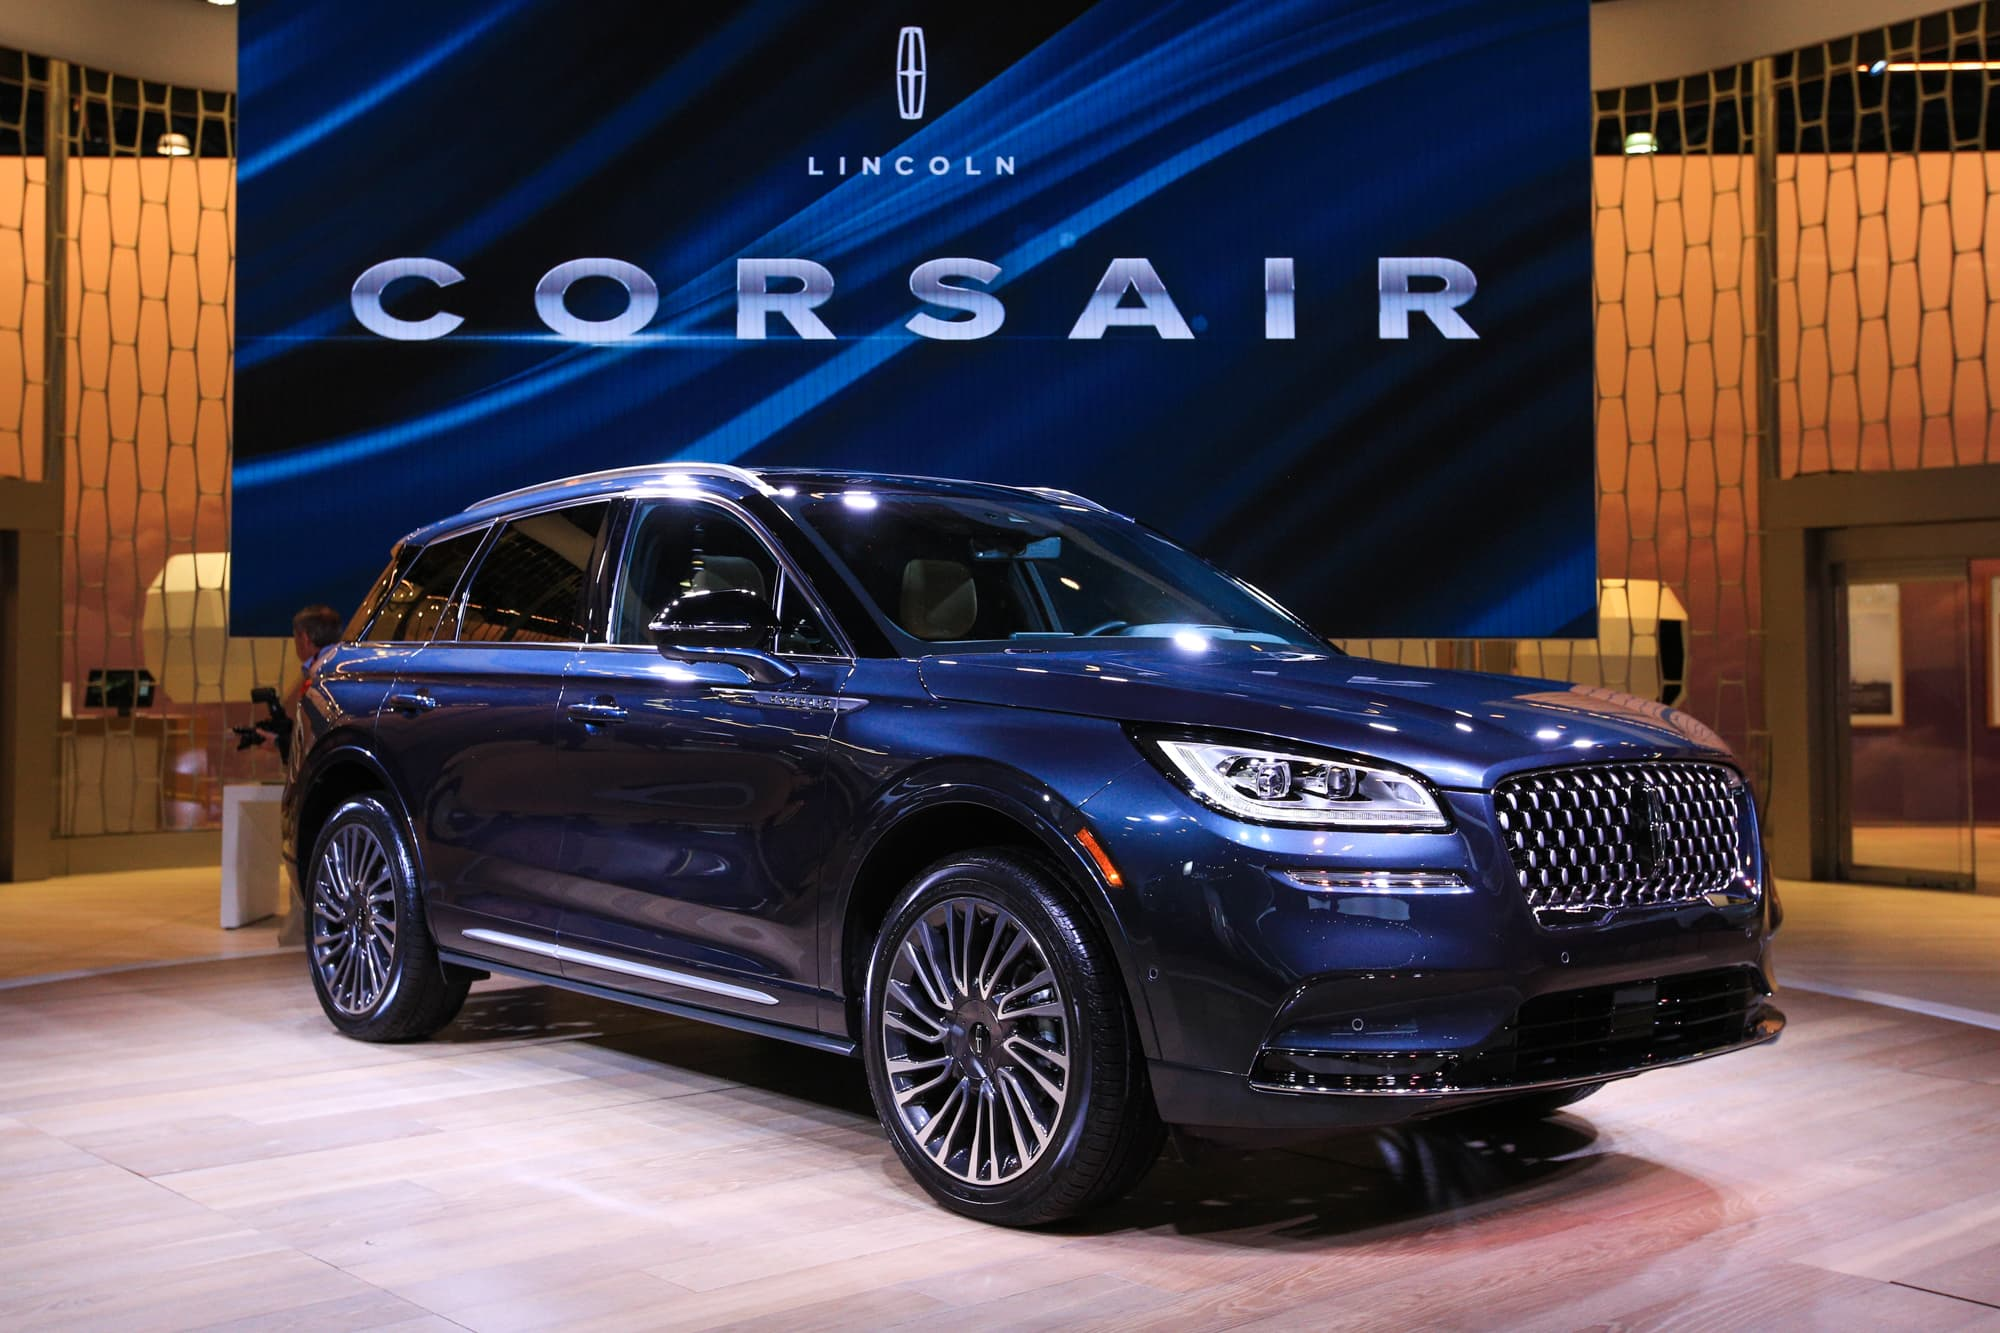 Lincoln Reveals New Corsair Suv At York Auto Show Targeting China And Fast Growing Utility Vehicle Market Us